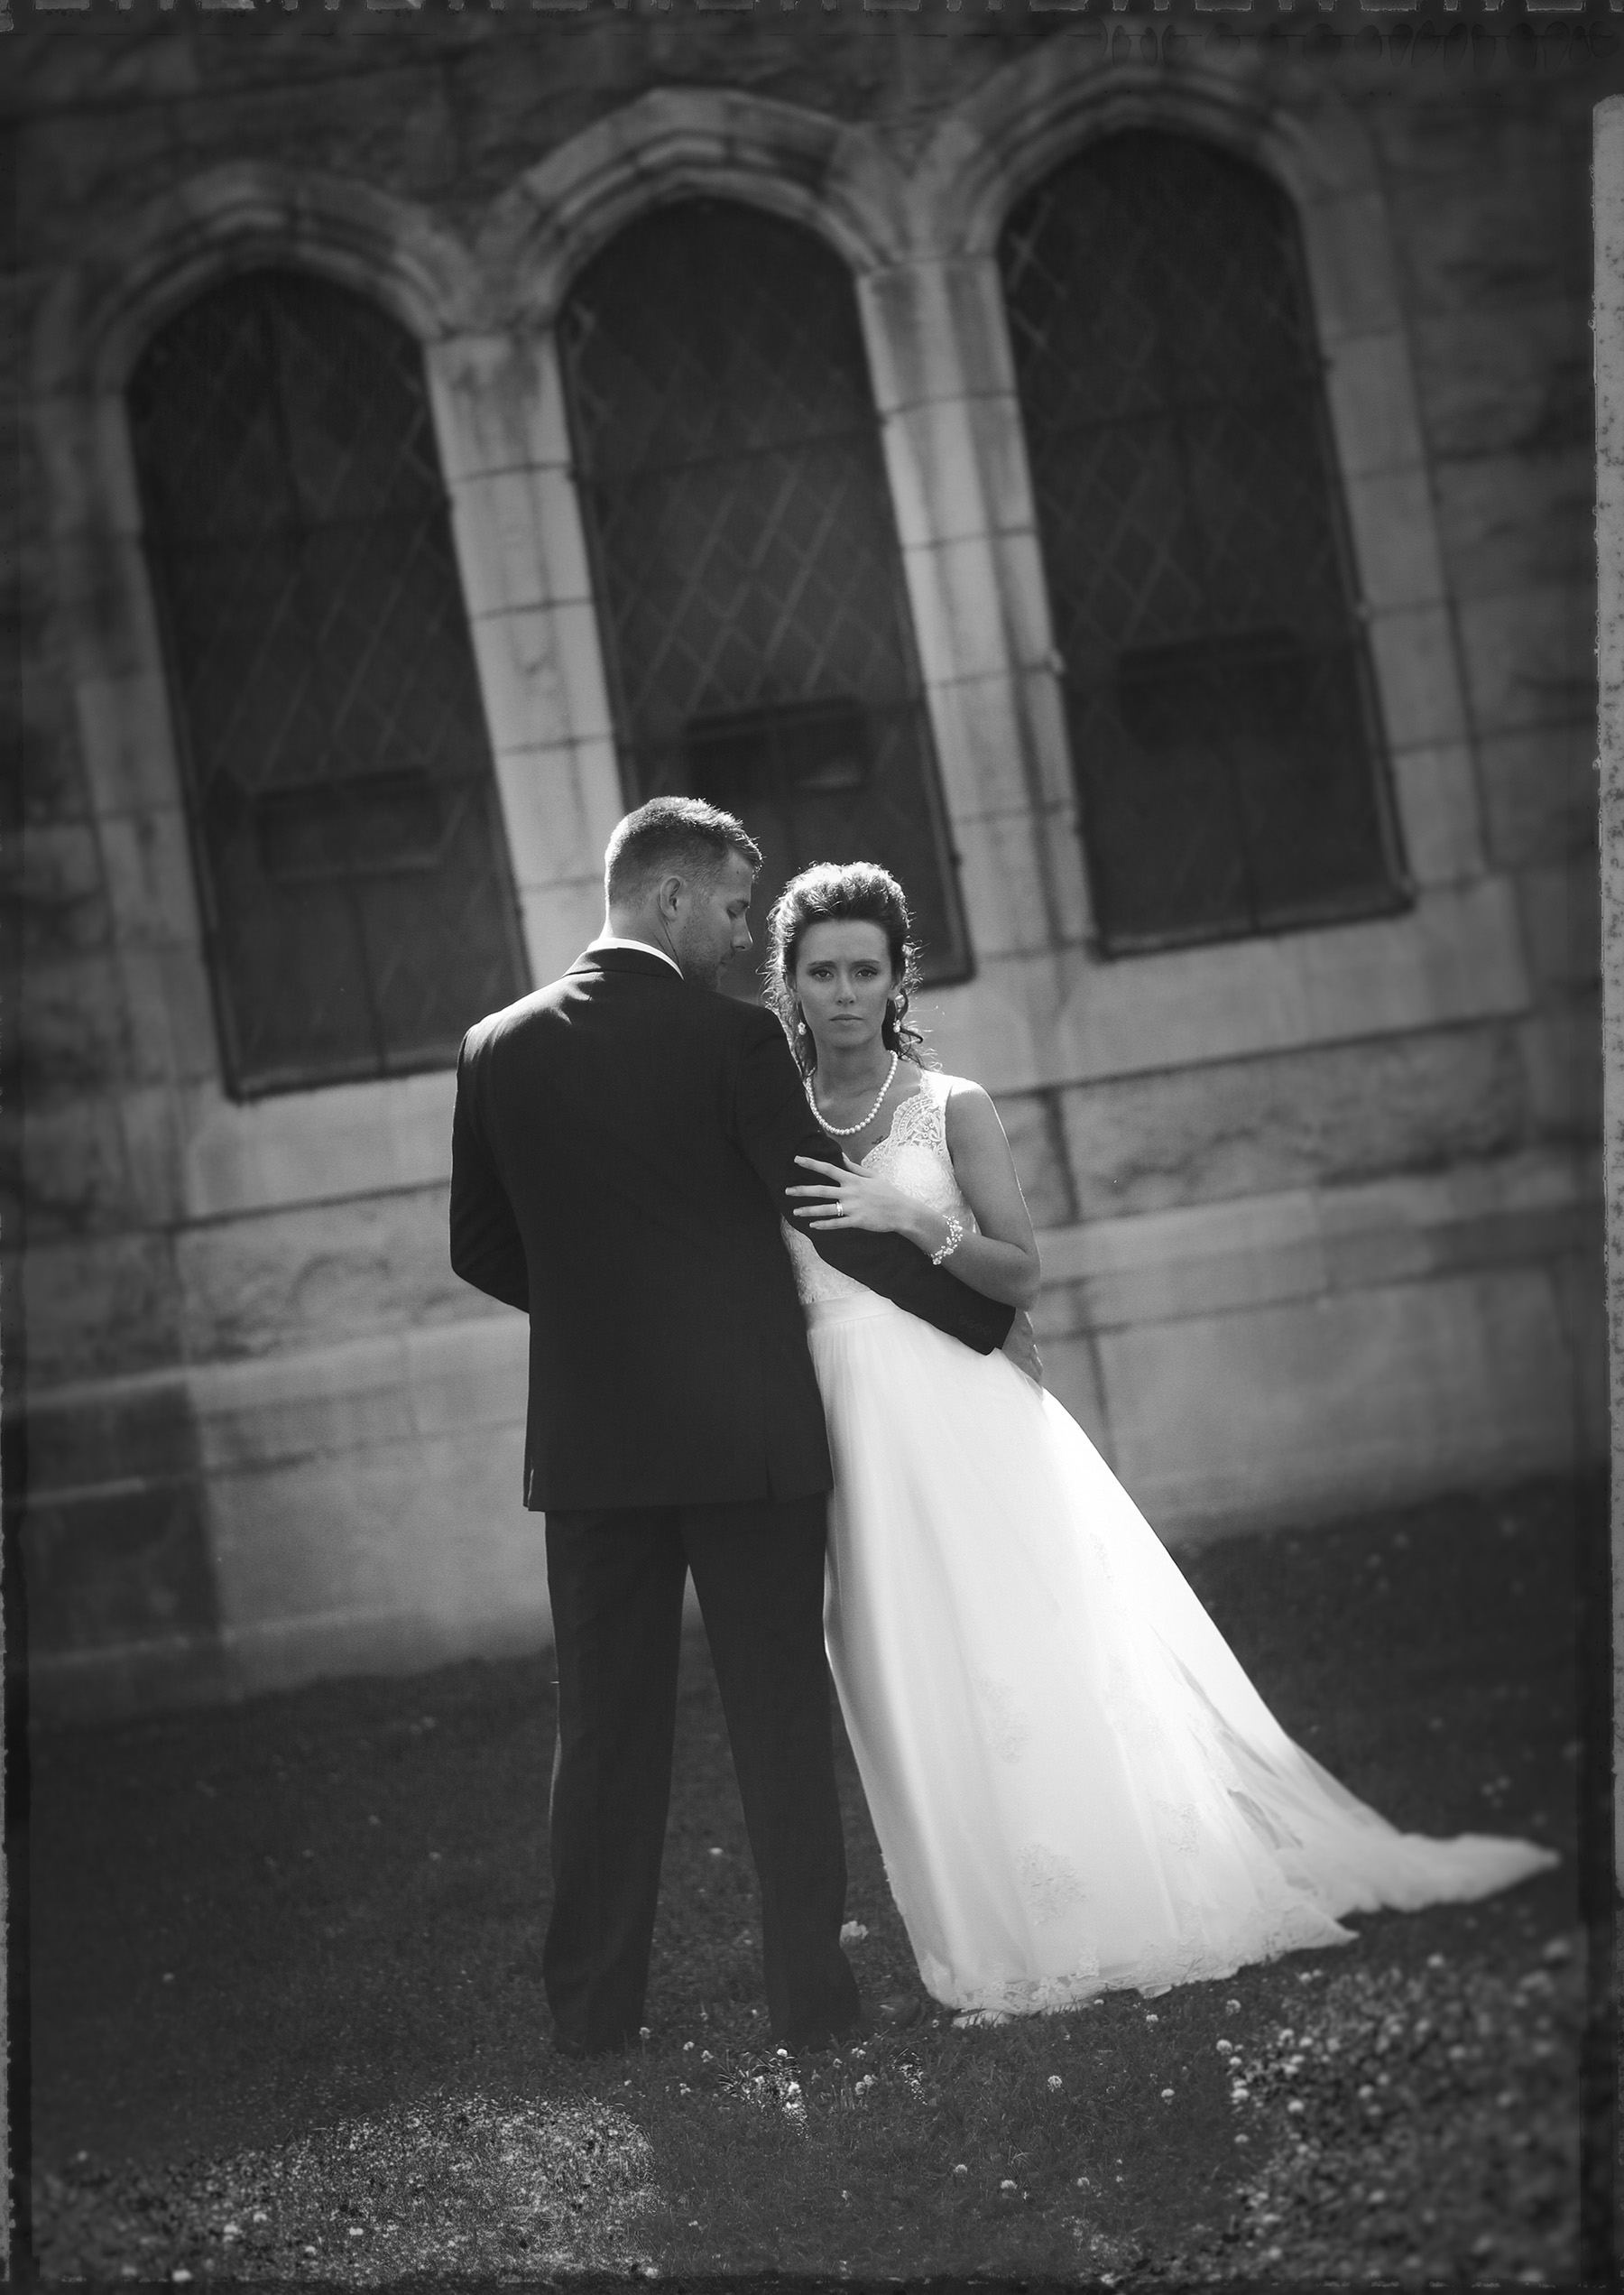 Portrait of a bride and groom.